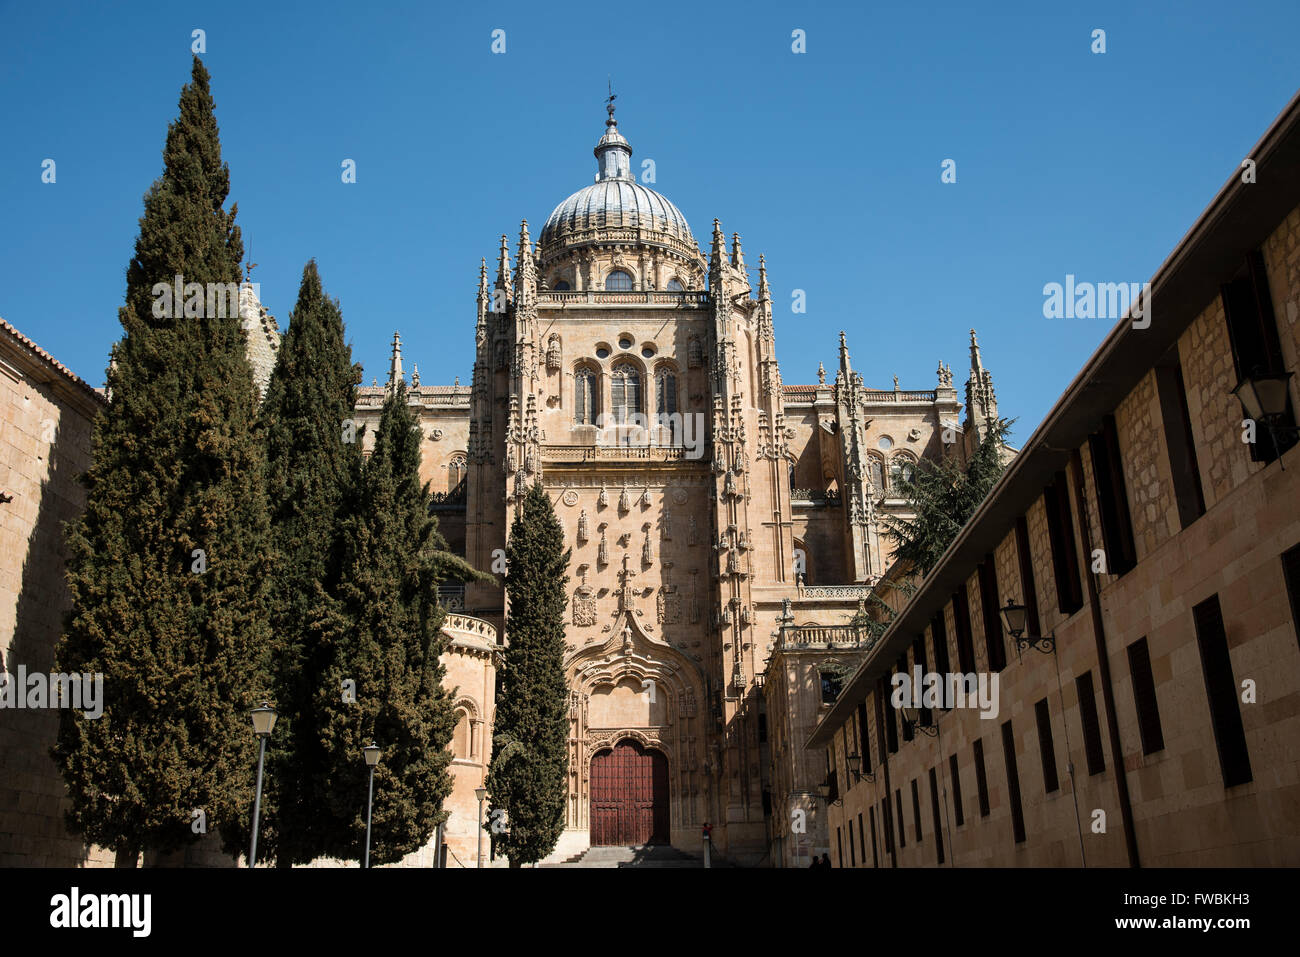 The New Cathedral (Catedral Nueva) of Salamanca, Spain ...